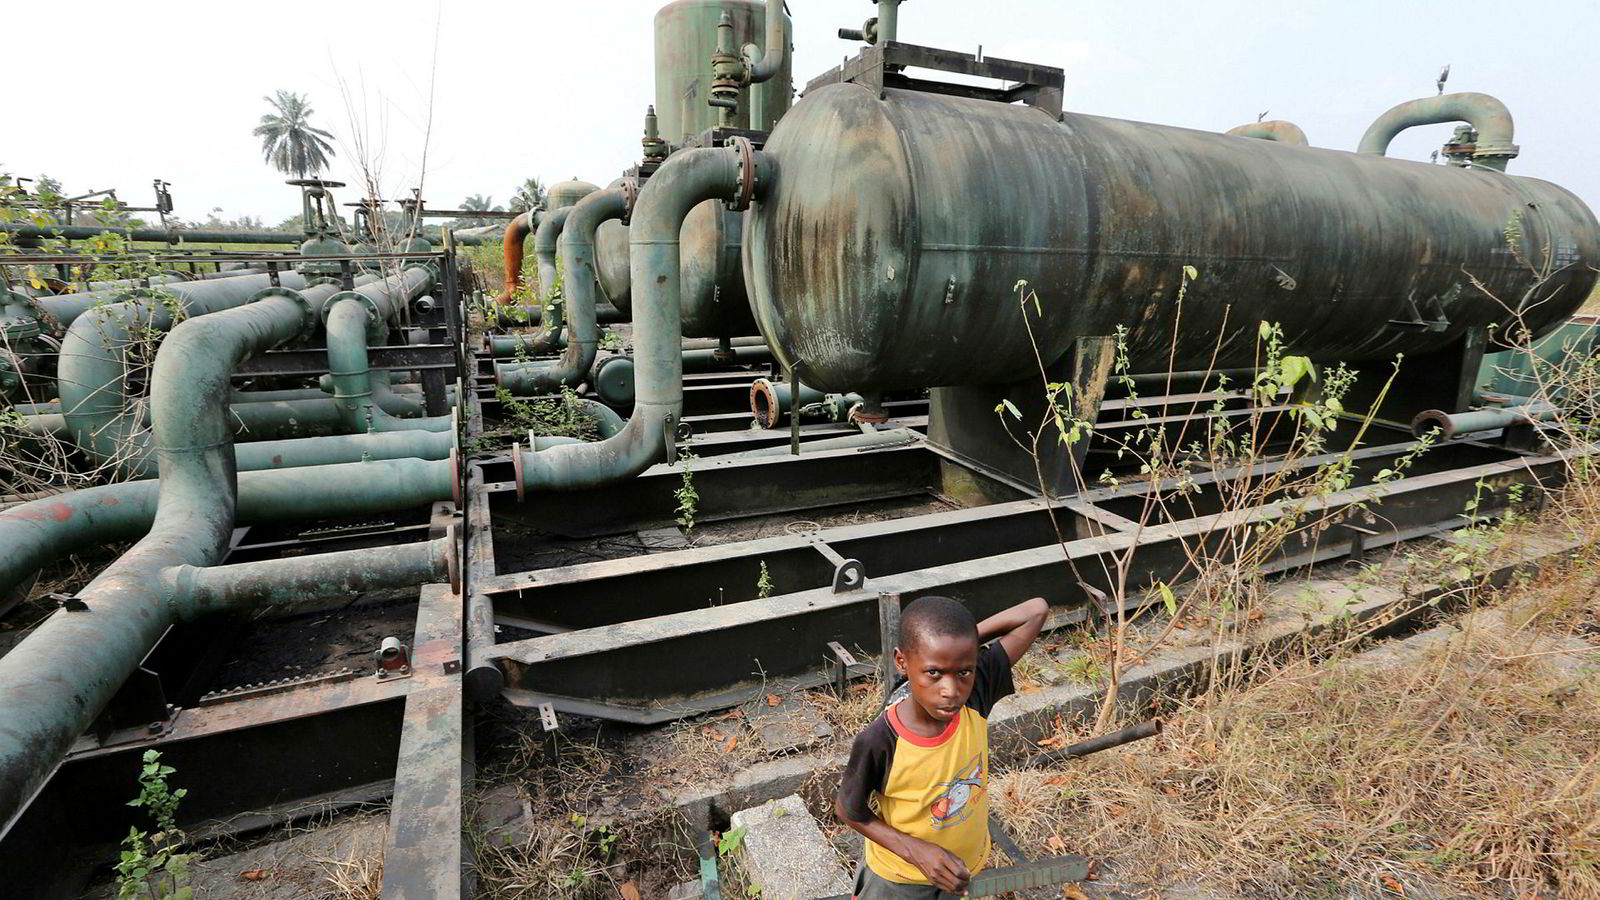 Kids play on broken pipework at an abandoned oil flow station operated by Royal Dutch Shell Plc in K-Dare, Nigeria, on Wednesday, Jan. 13, 2016. Twenty years after the oil-pollution crisis in the Niger delta shot to world attention when the then military government hanged the author and environmentalist, Ken Saro-Wiwa, residents in the region are seething with anger again that the problem hasn't been fixed. Photographer: George Osodi/Bloomberg ---